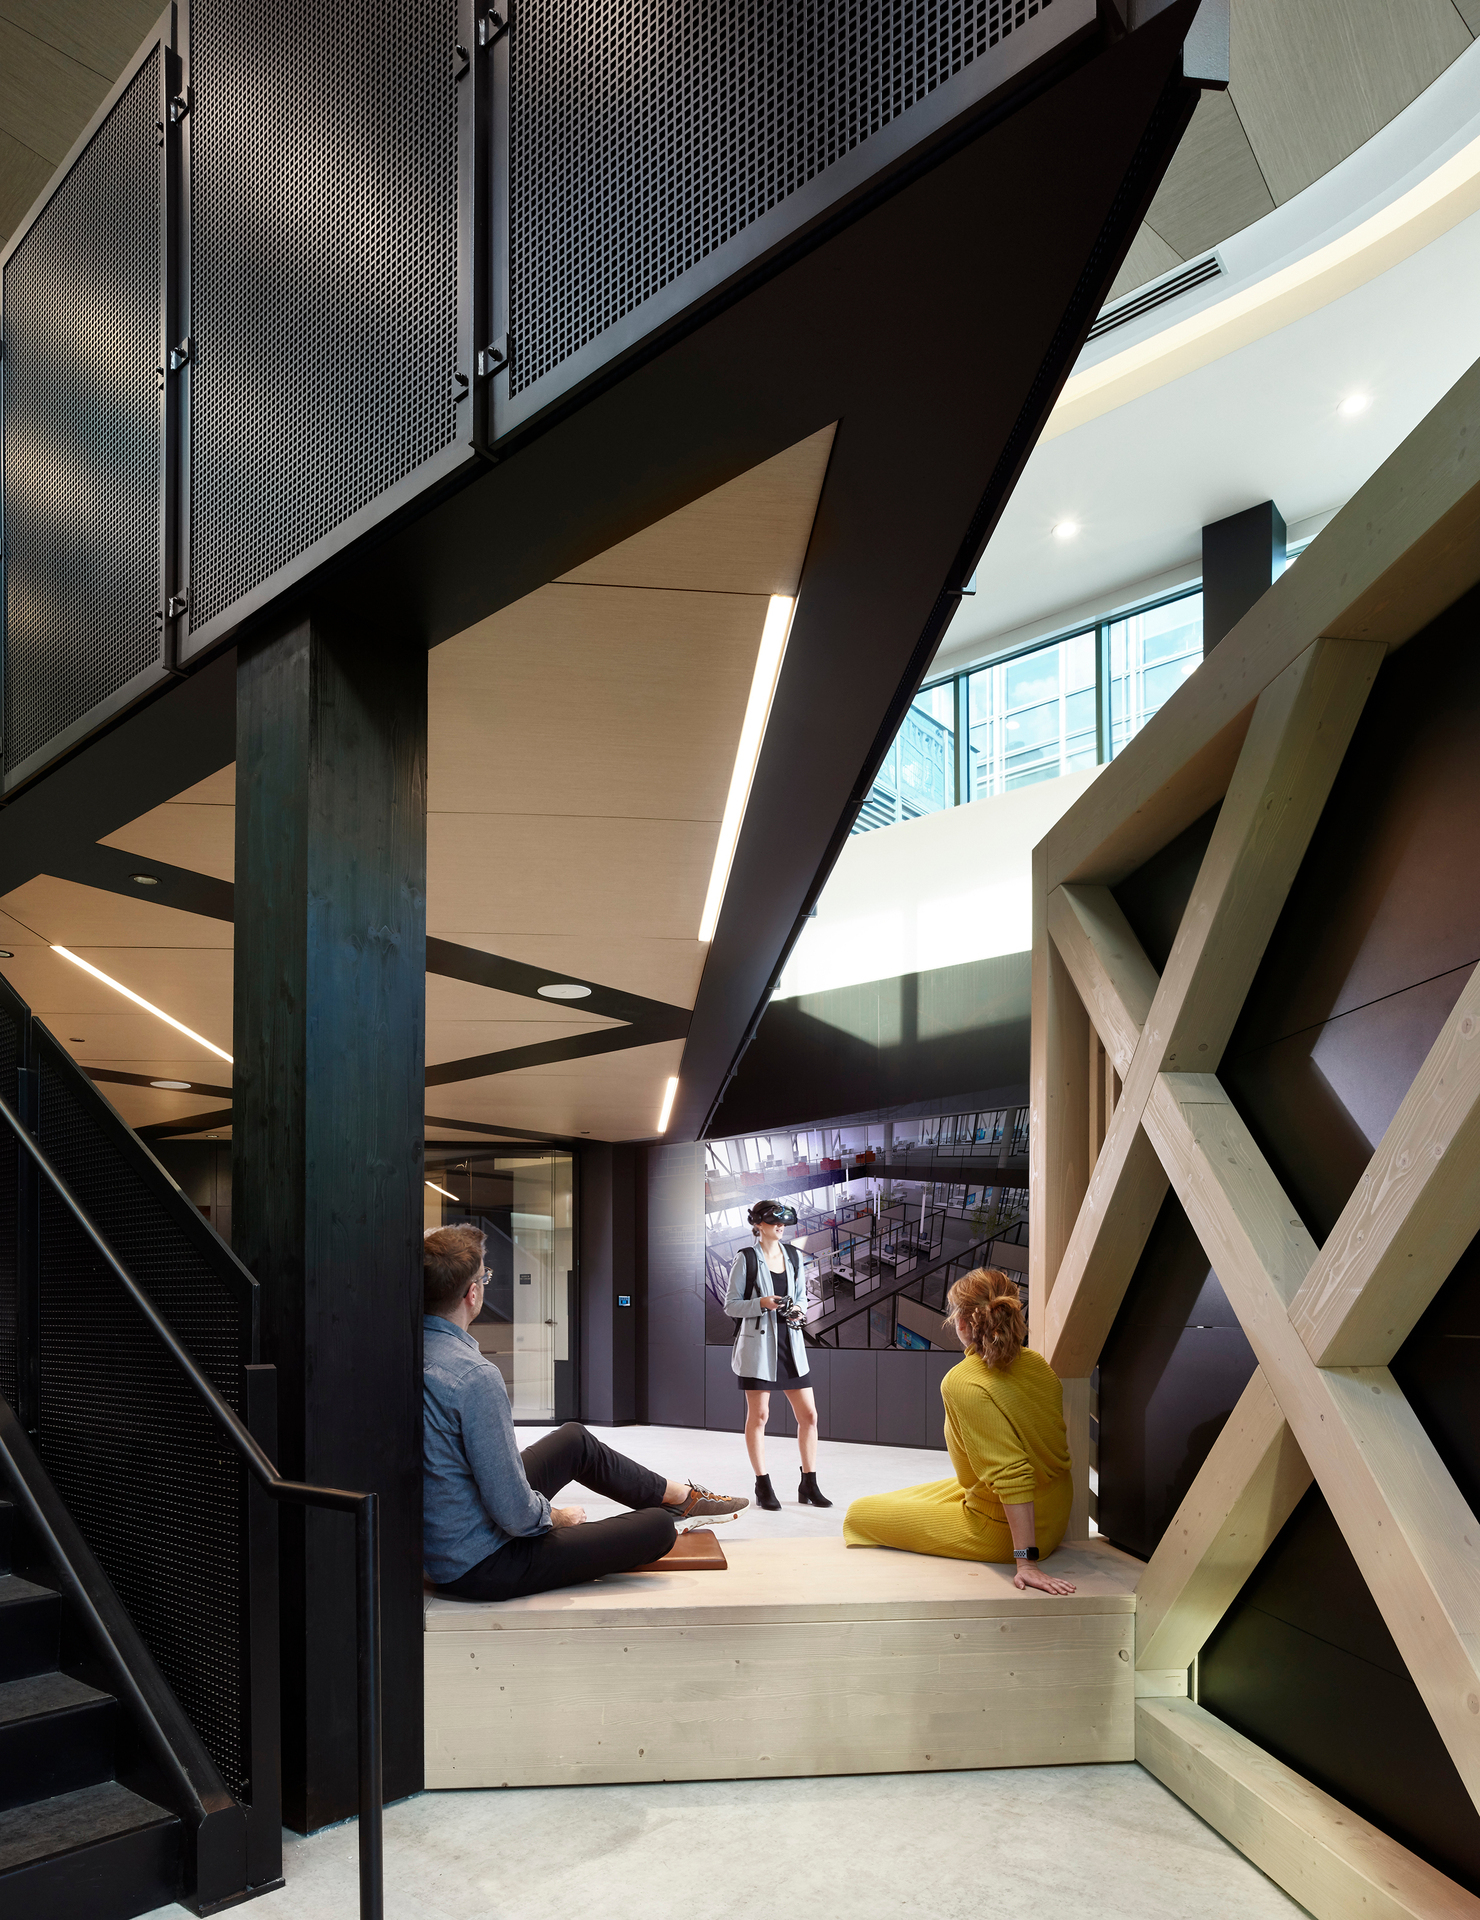 Chicago DIRTT Experience Center photo showing a common space built using DIRTT custom modular interior solutions.